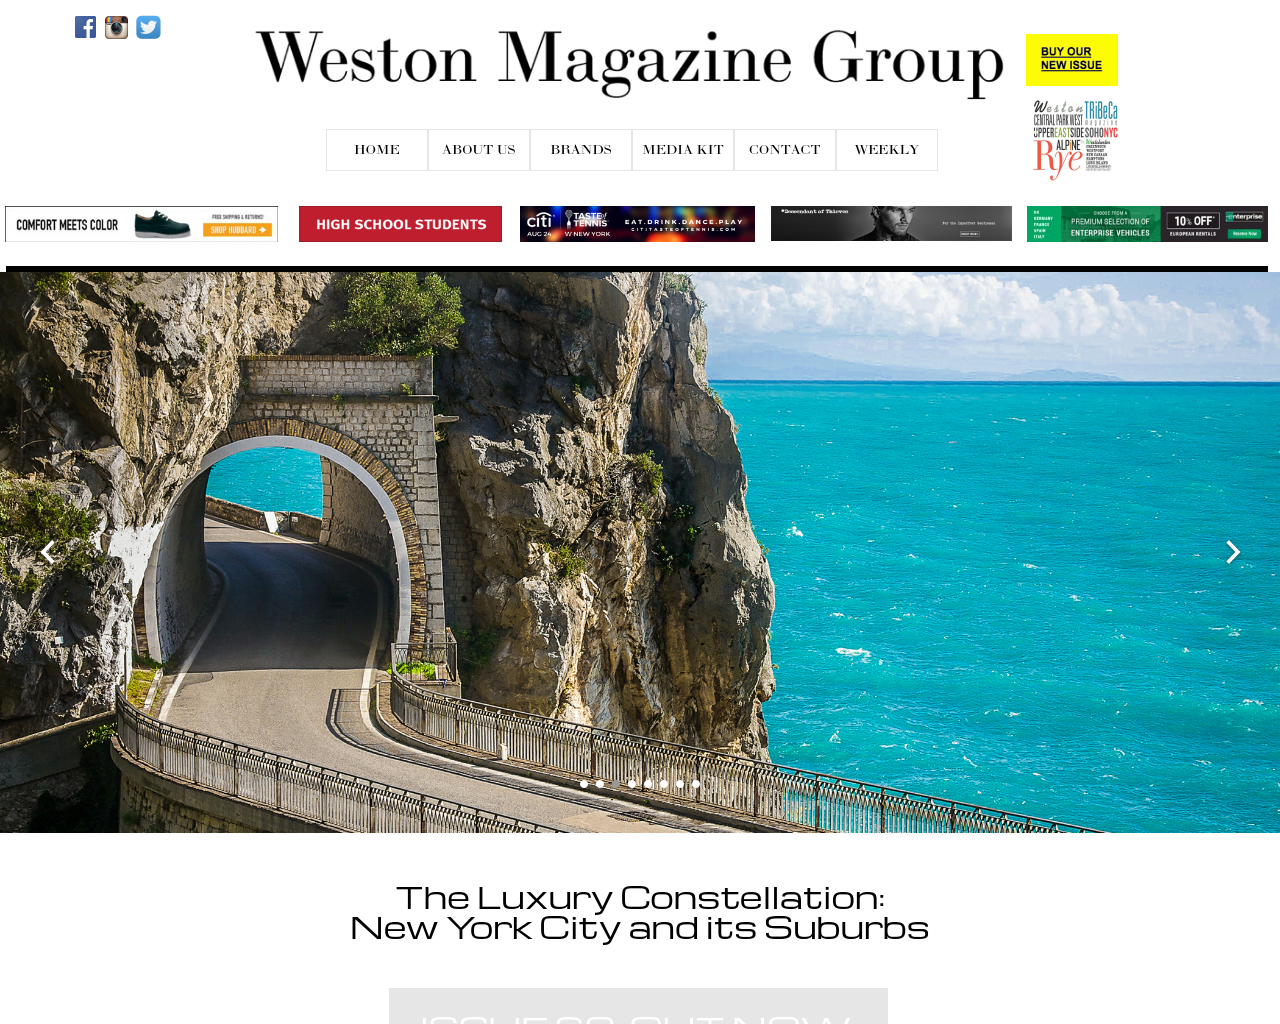 Weston-Magazine-Group-Advertising-Reviews-Pricing